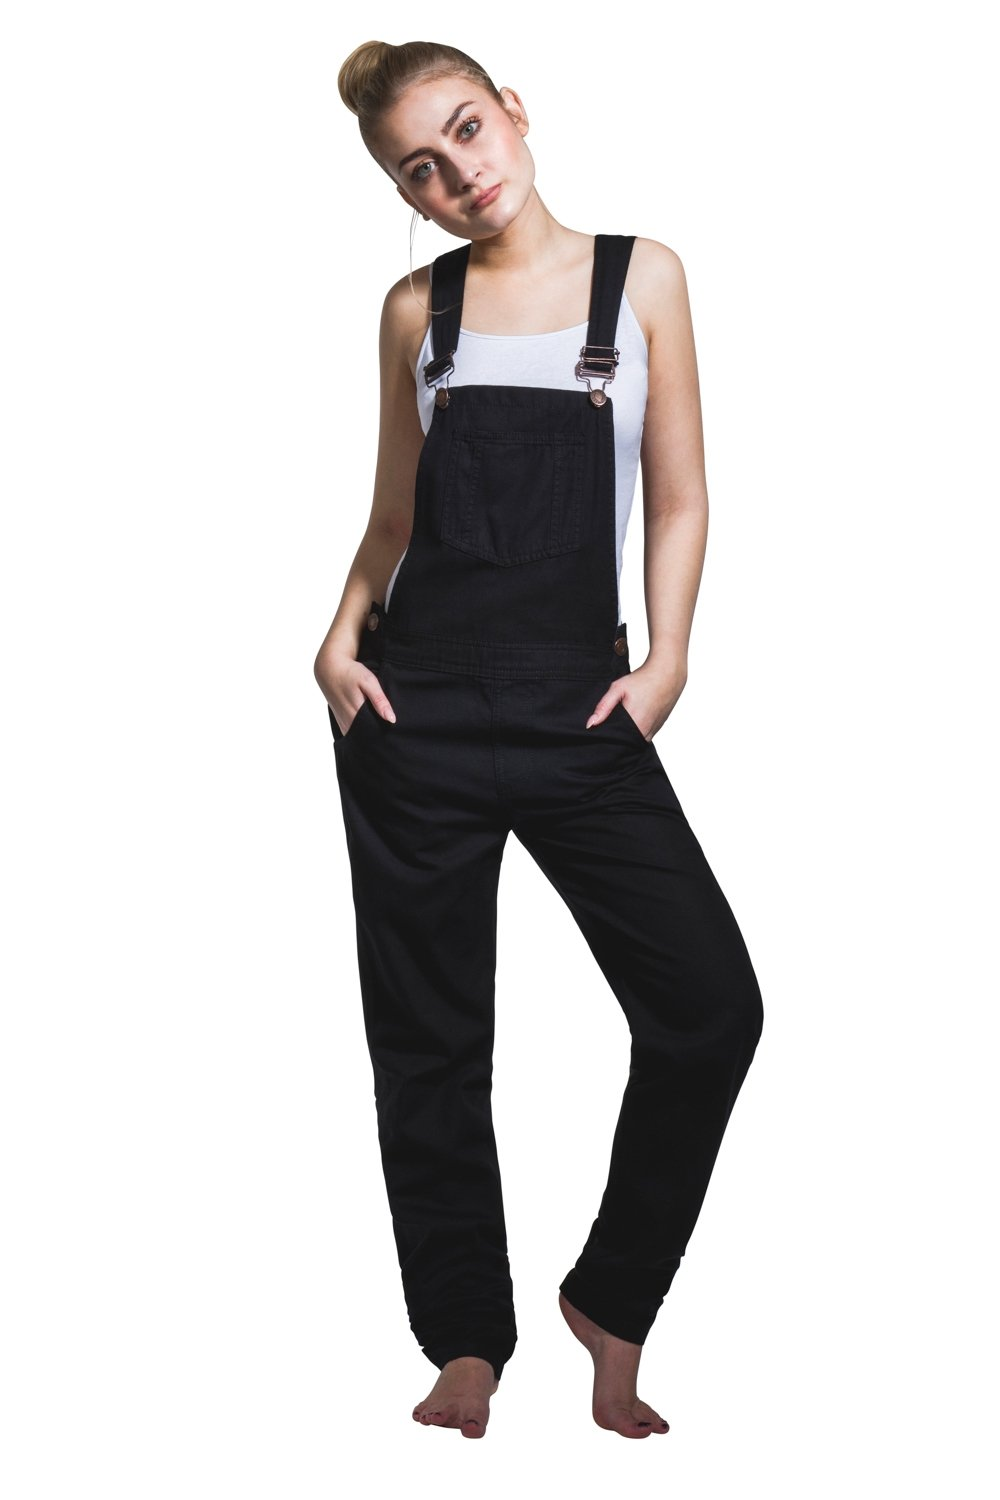 USKEES Amanda Carrot Fit Bib Overalls - Black Ladies Dungarees lightweight